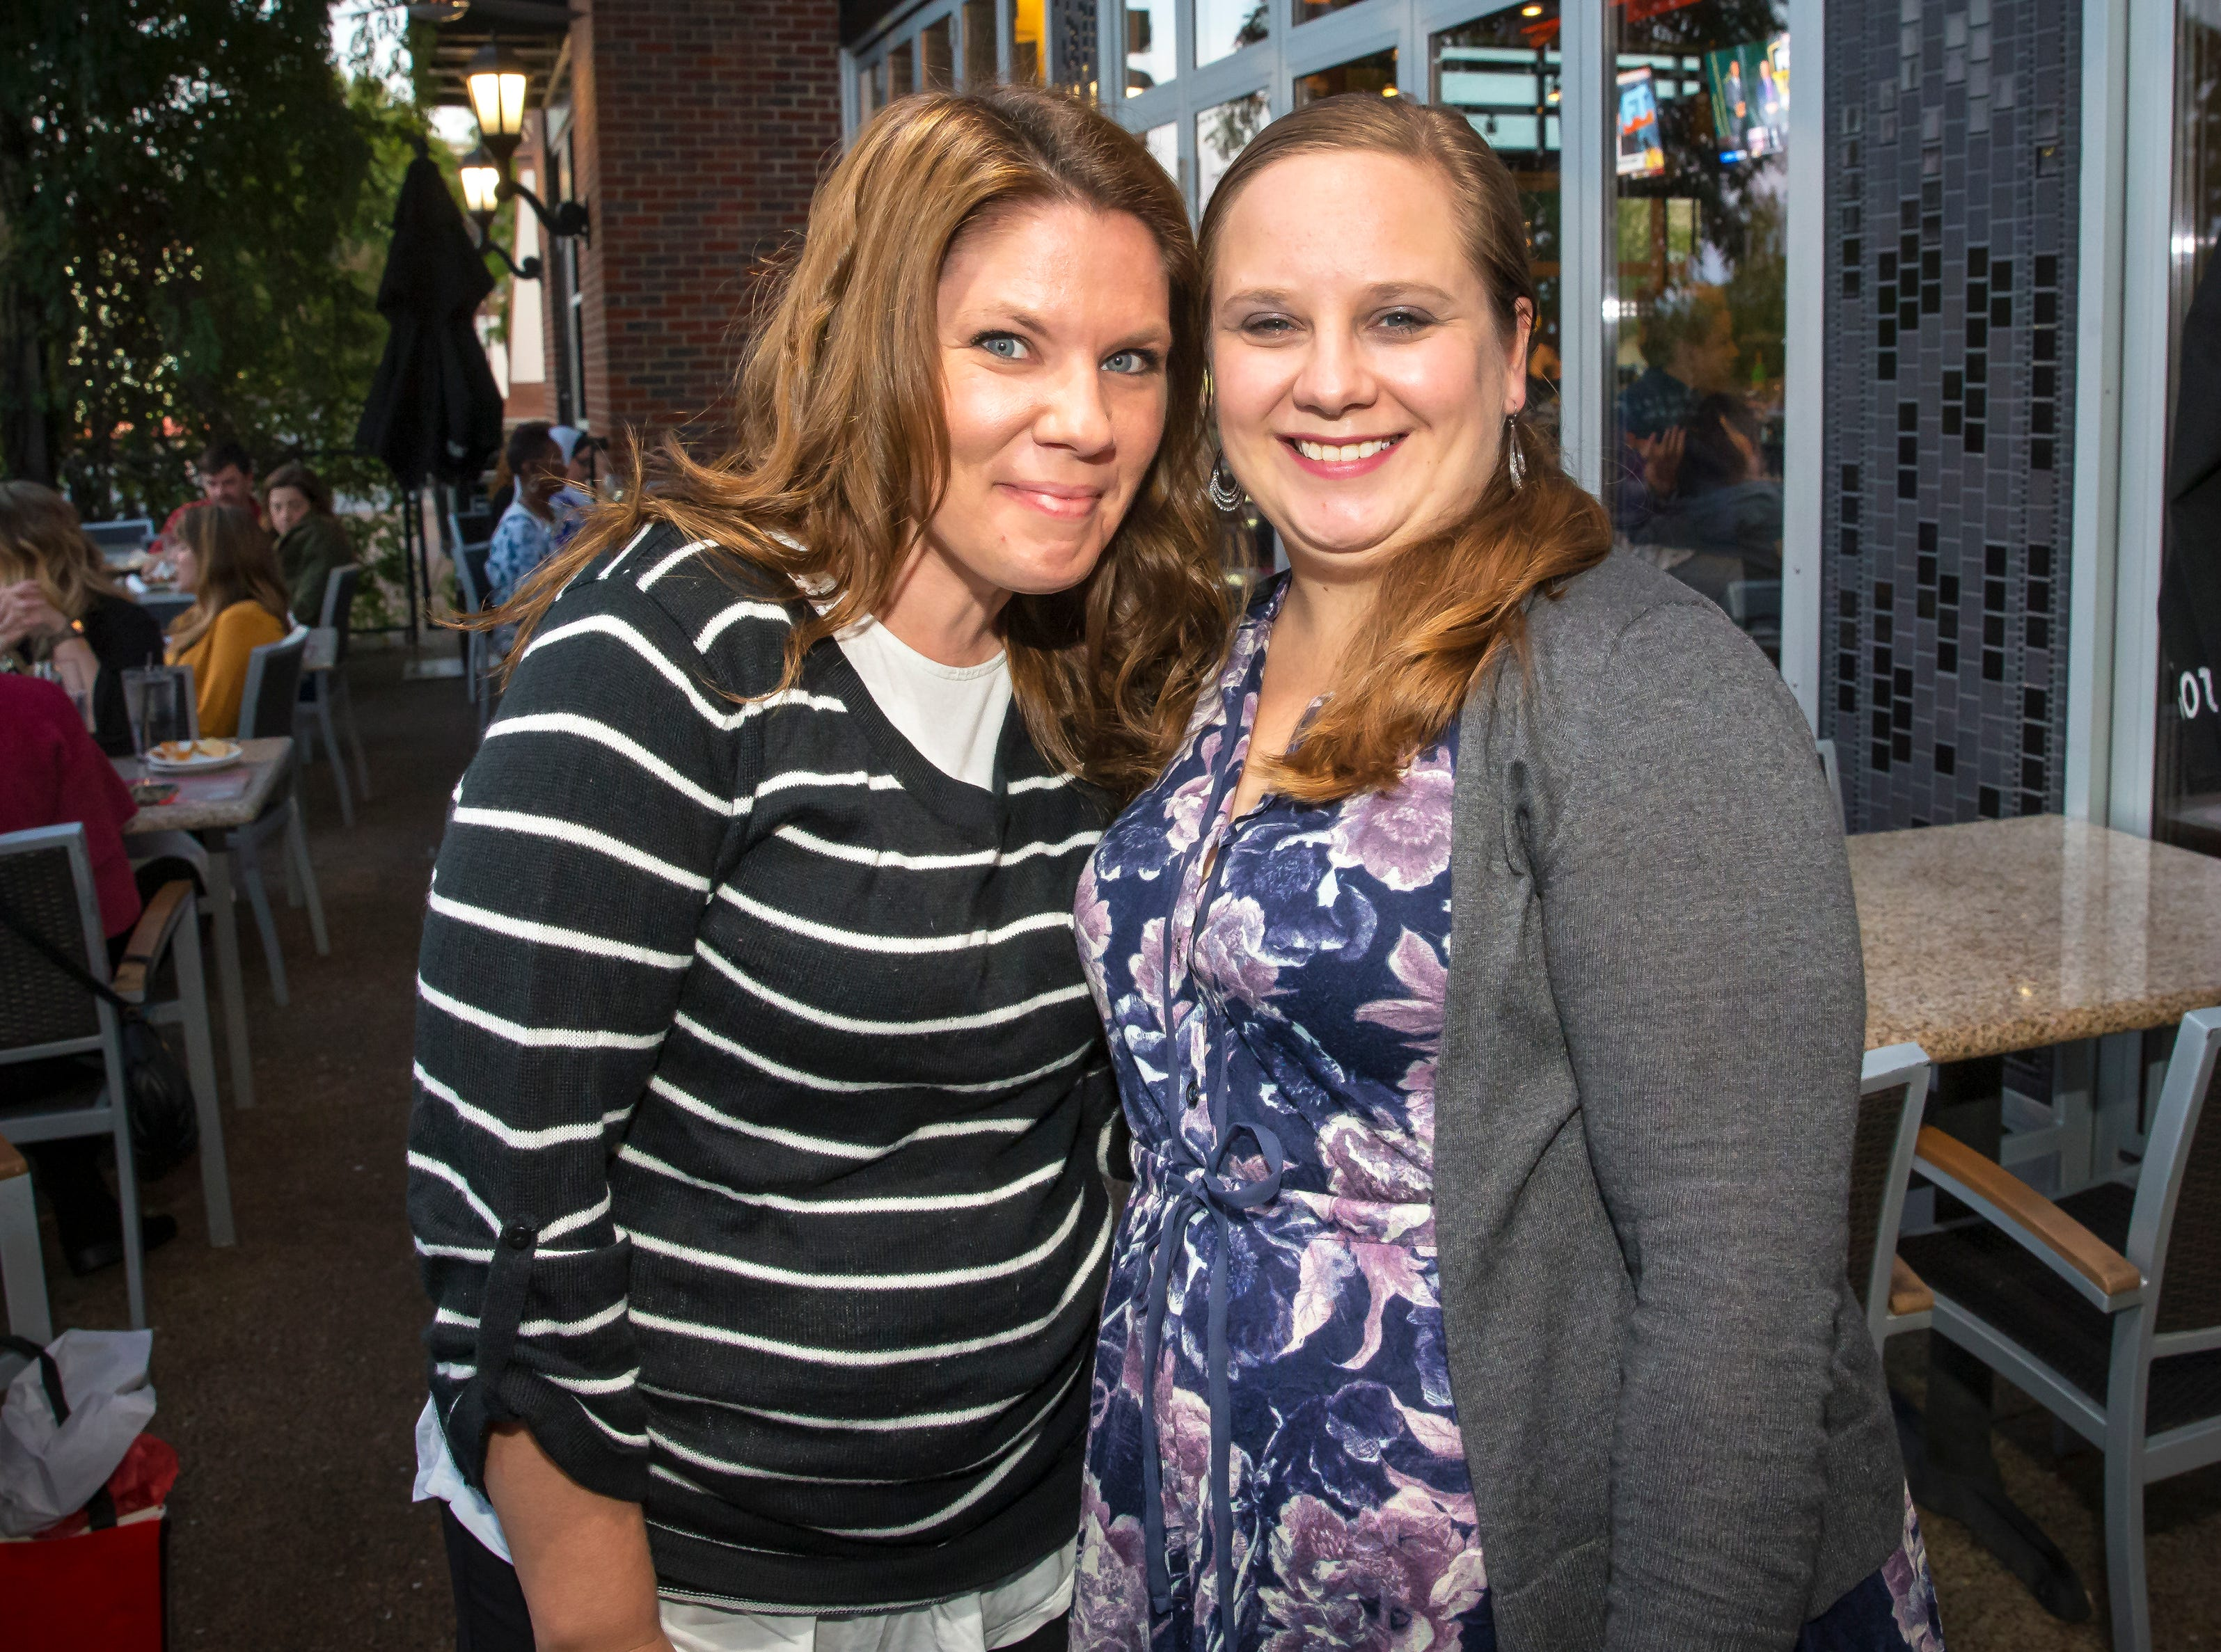 Marla Allen and Sarah Clark at the Murfreesboro Magazine Most Beautiful People event held at Bar Louie.